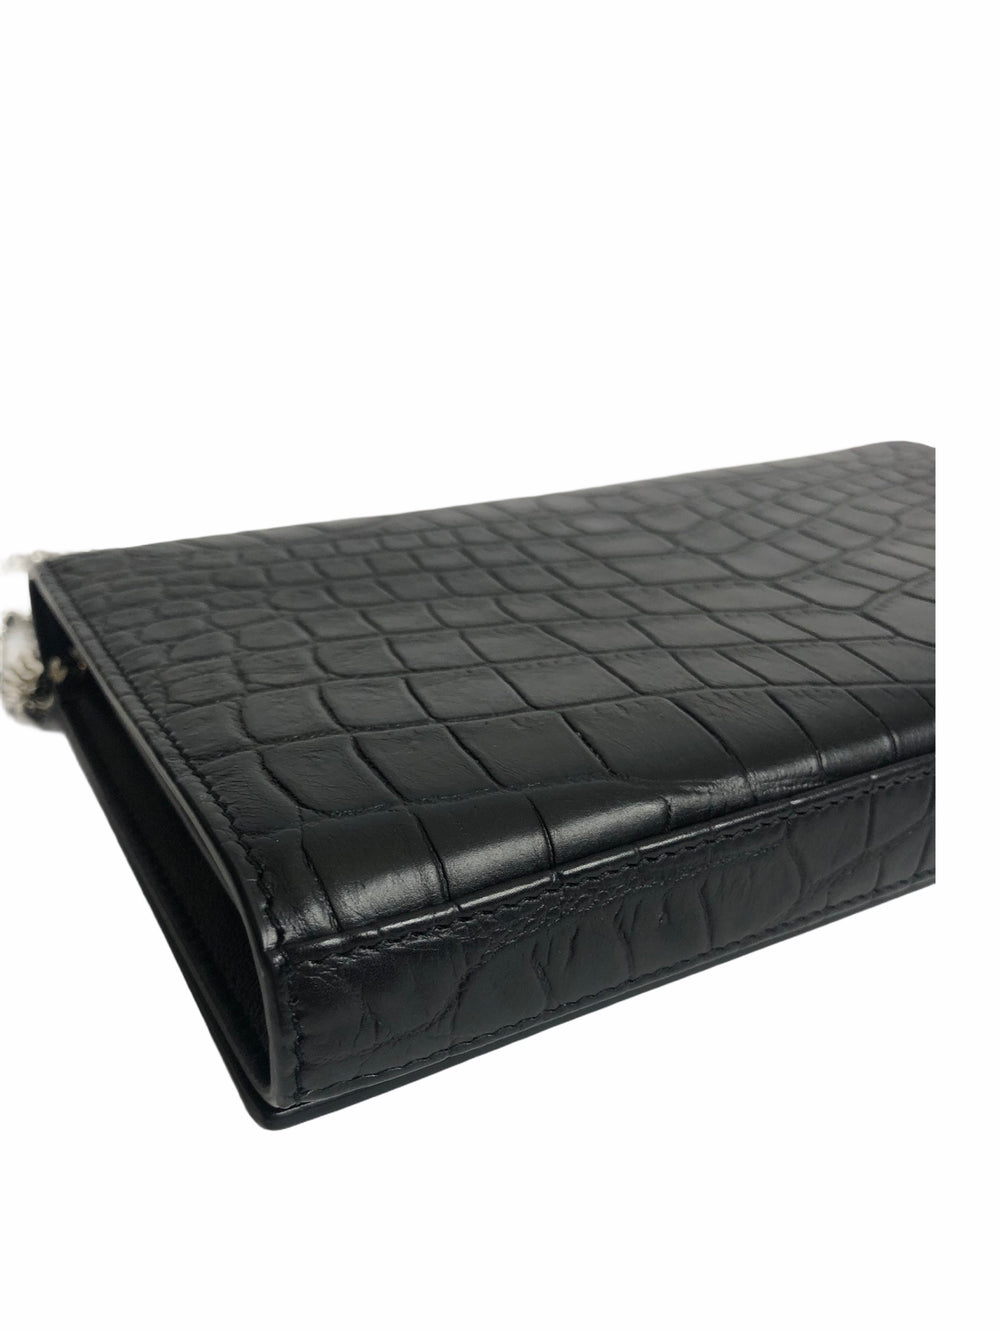 Saint Laurent Black Croc Embossed Leather Wallet on Chain - As Seen on Instagram 18/11/20